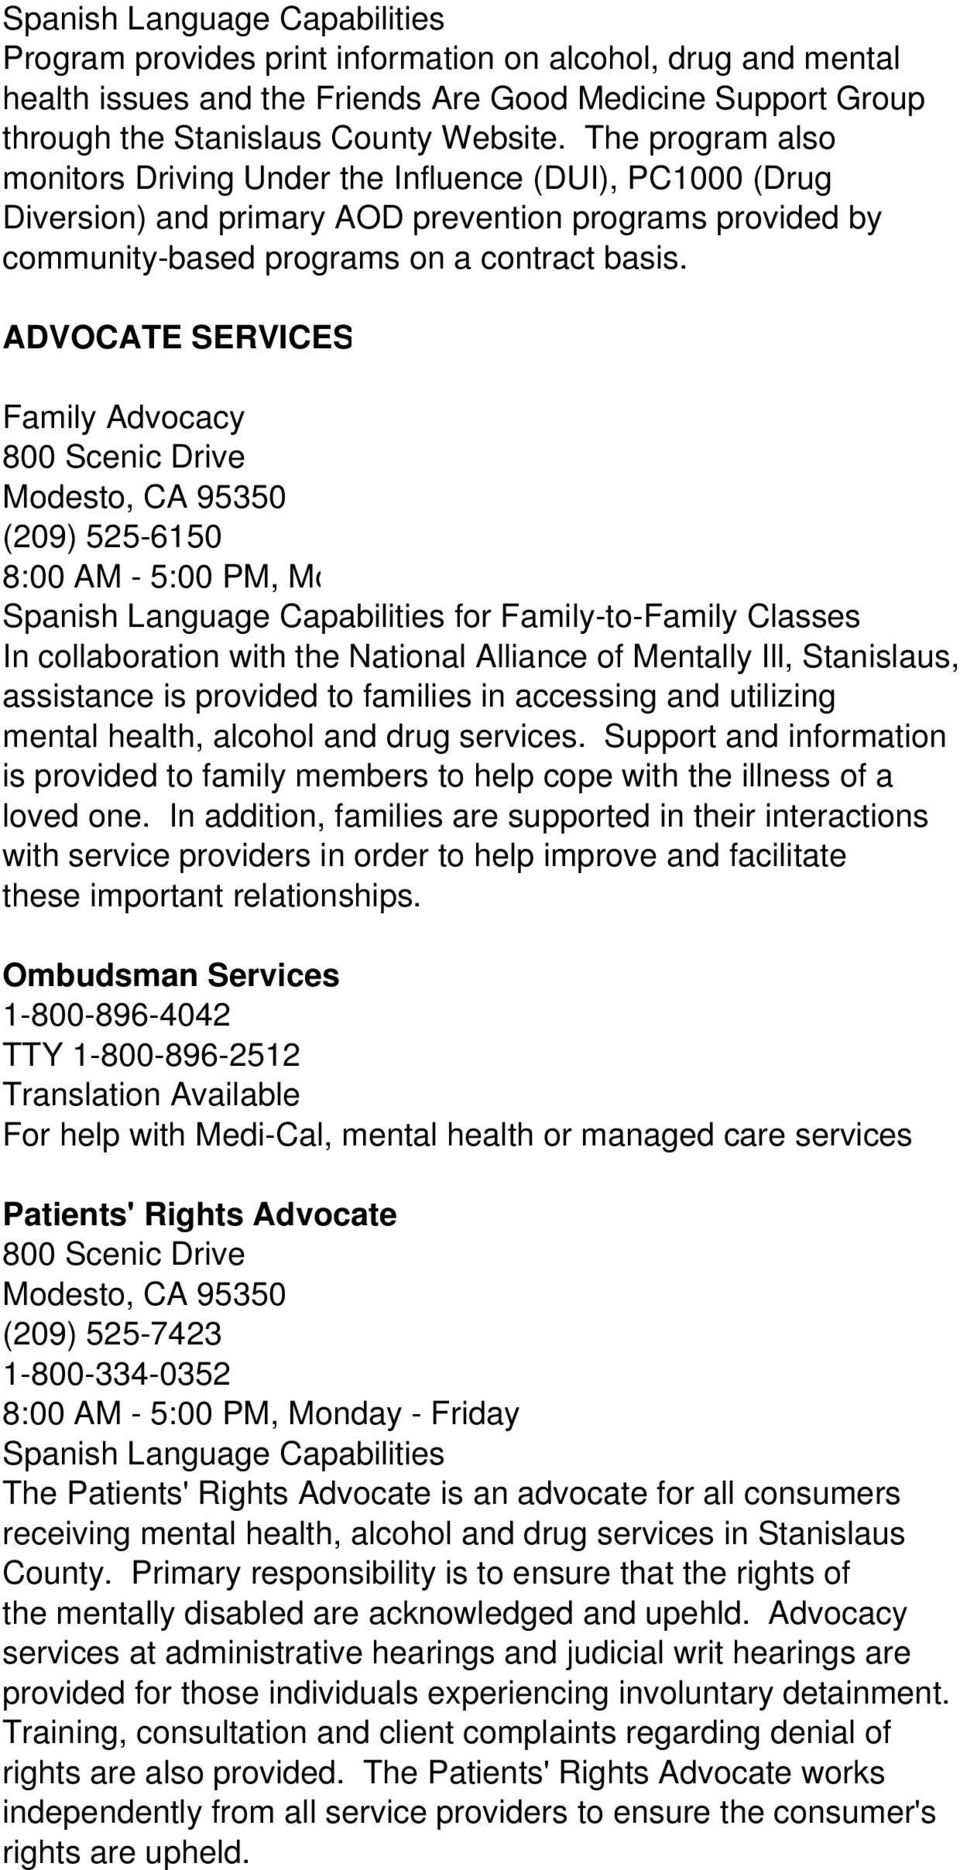 ADVOCATE SERVICES Family Advocacy (209) 525-6150 8:00 AM - 5:00 PM, M o for Family-to-Family Classes In collaboration with the National Alliance of Mentally Ill, Stanislaus, assistance is provided to